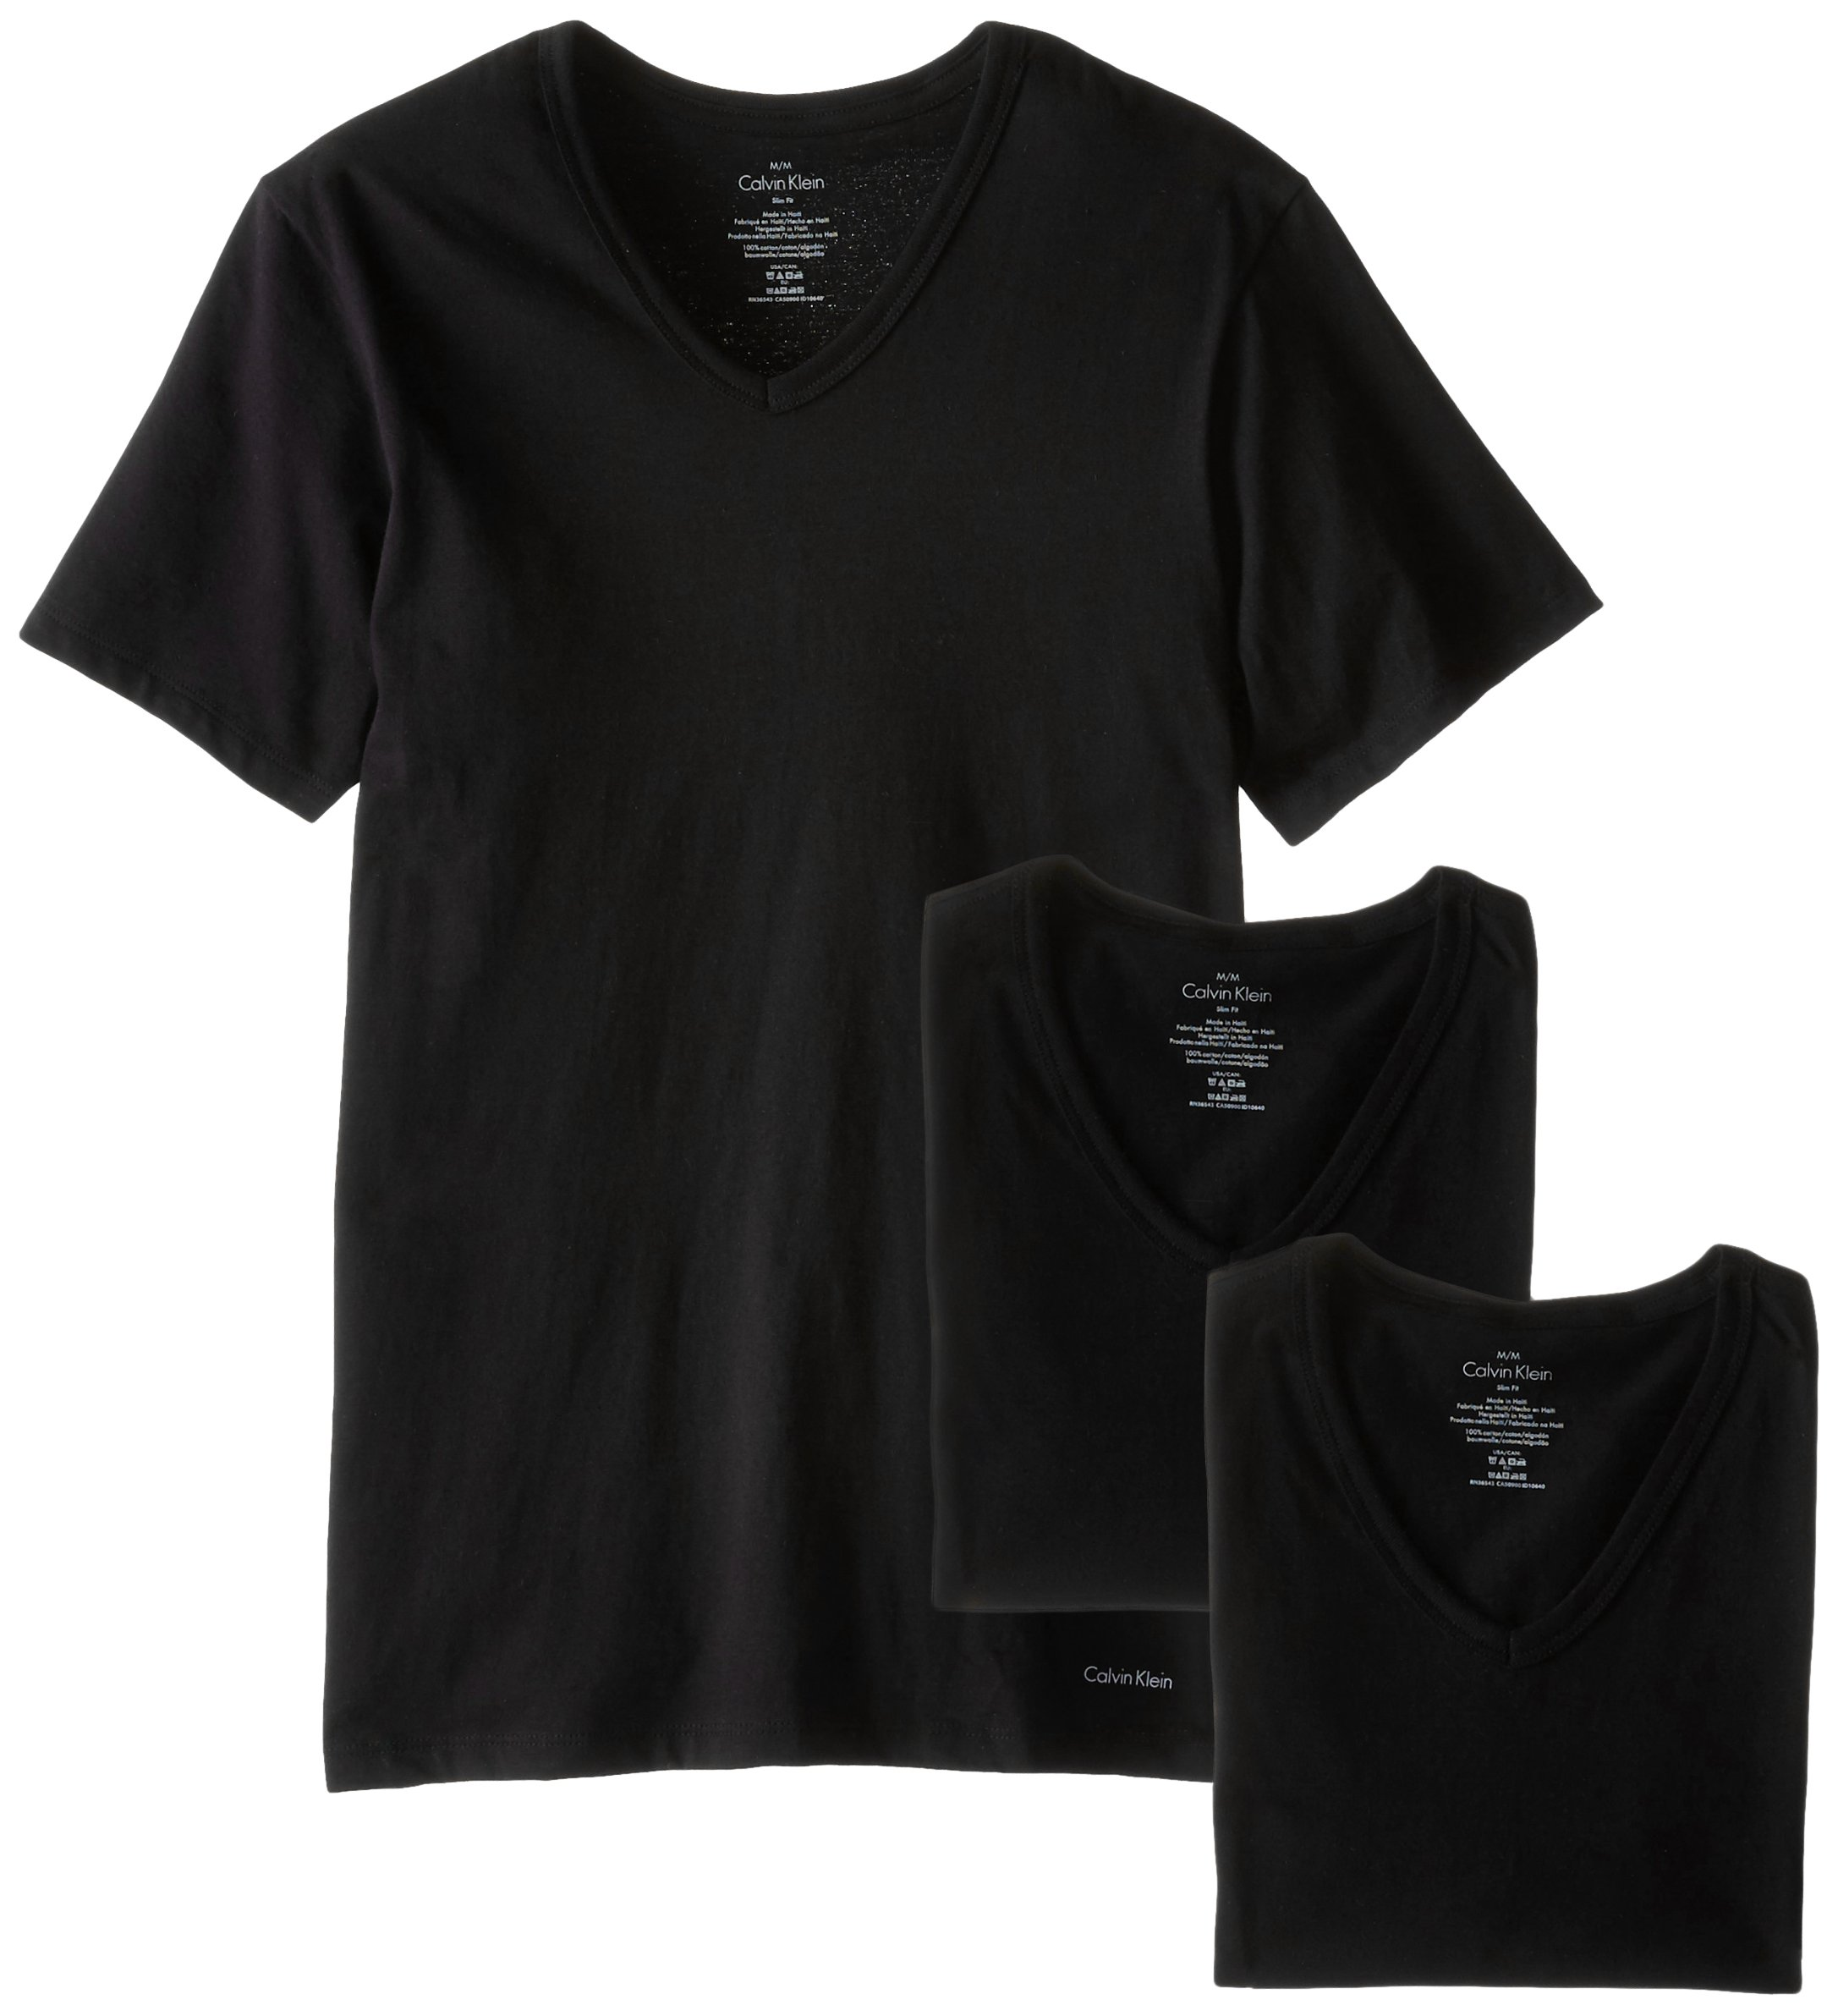 Calvin Klein Men's Undershirts Cotton Classics 3 Pack Slim Fit V Neck Tshirts, Black, Small